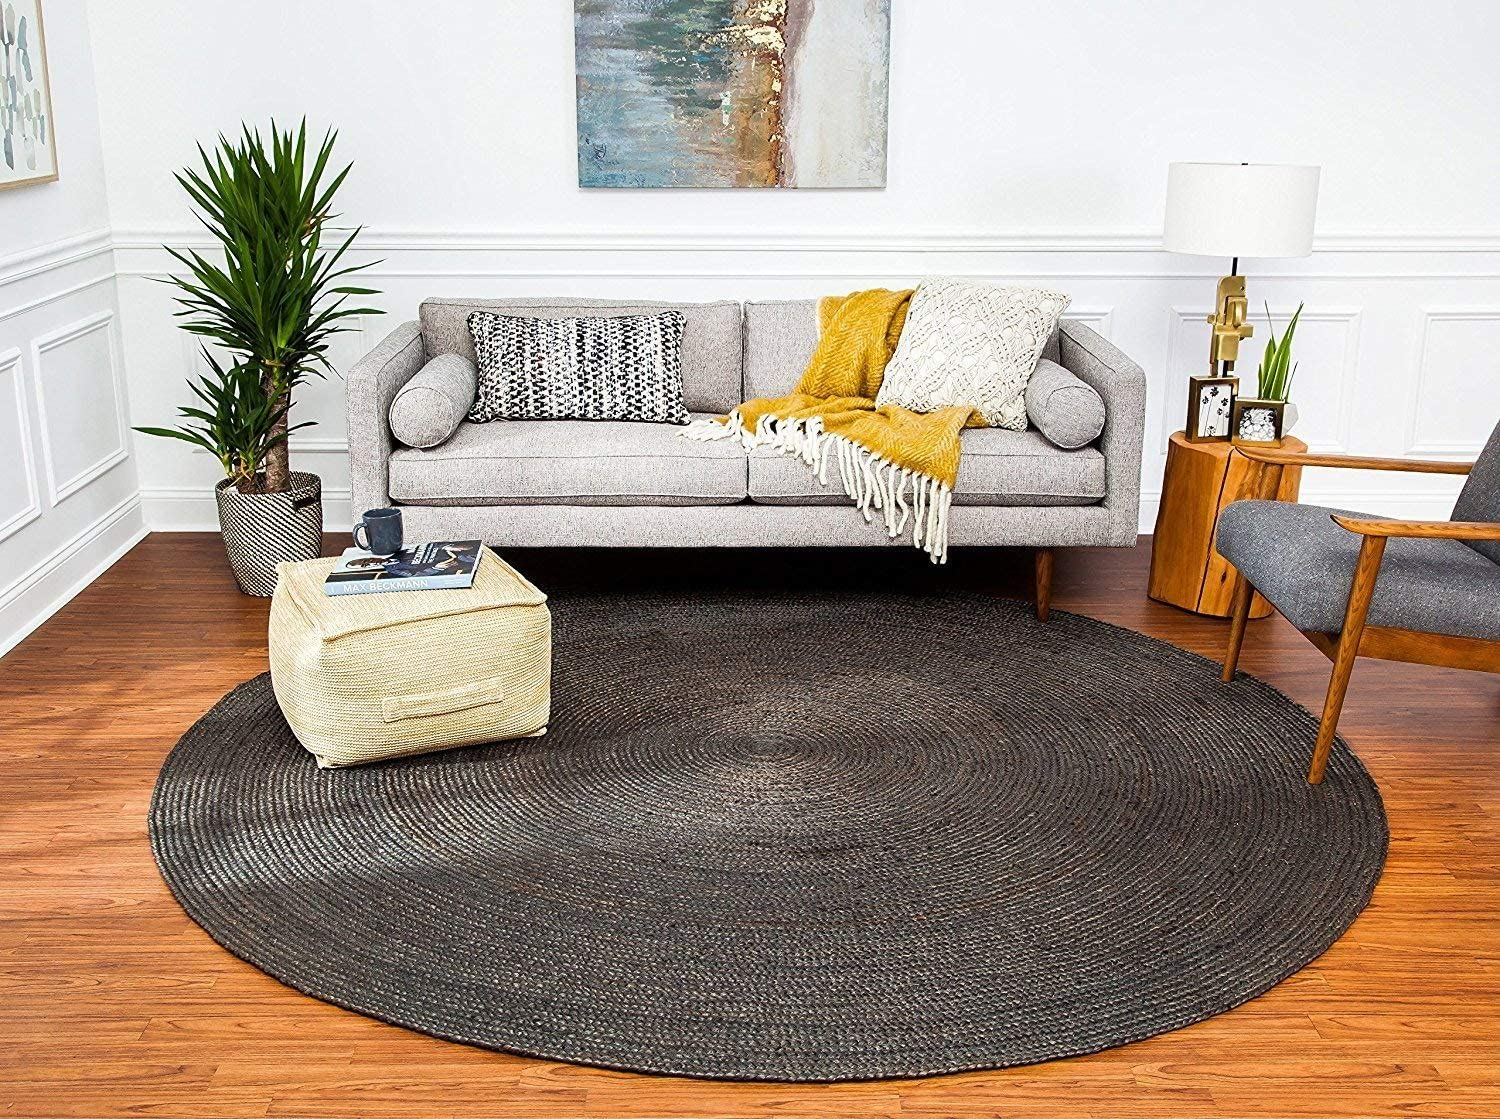 Anji Mountain Kerala Jute Area Rug, 4-Feet Diameter, Gray